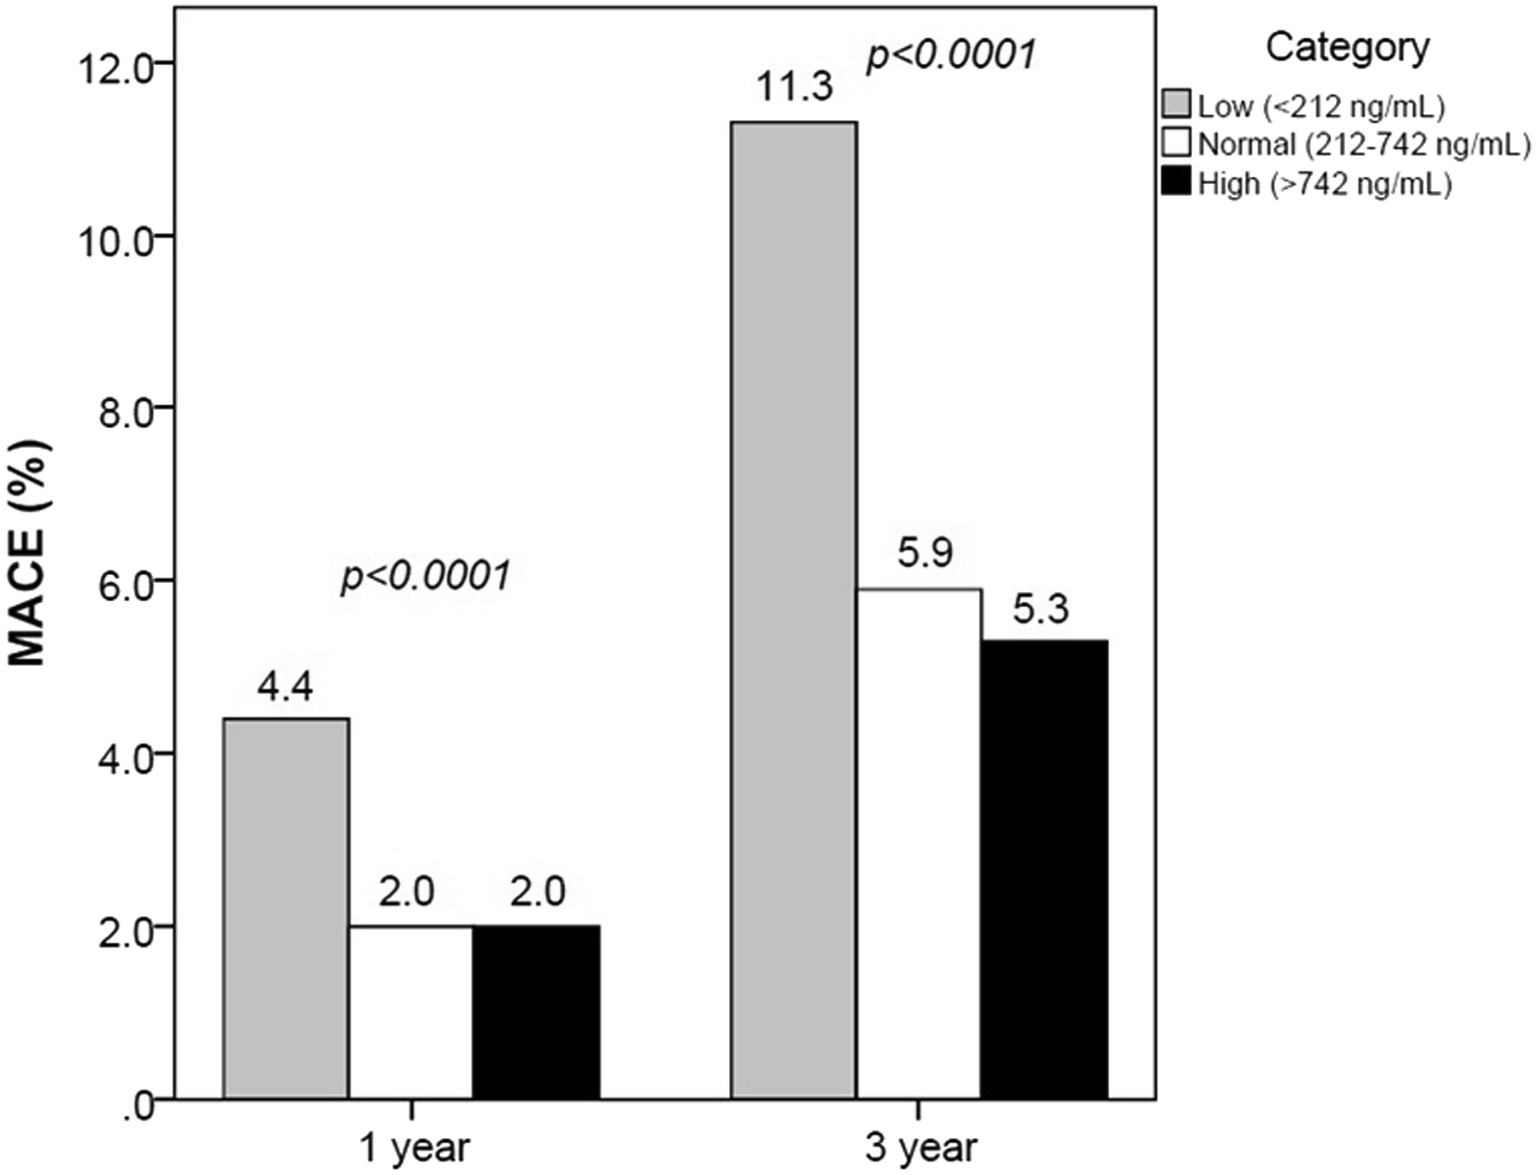 impact of myocardial infarction Objective to measure the short term impact on hospital admissions for myocardial infarction of the introduction of smoke-free legislation in england on 1 july 2007.